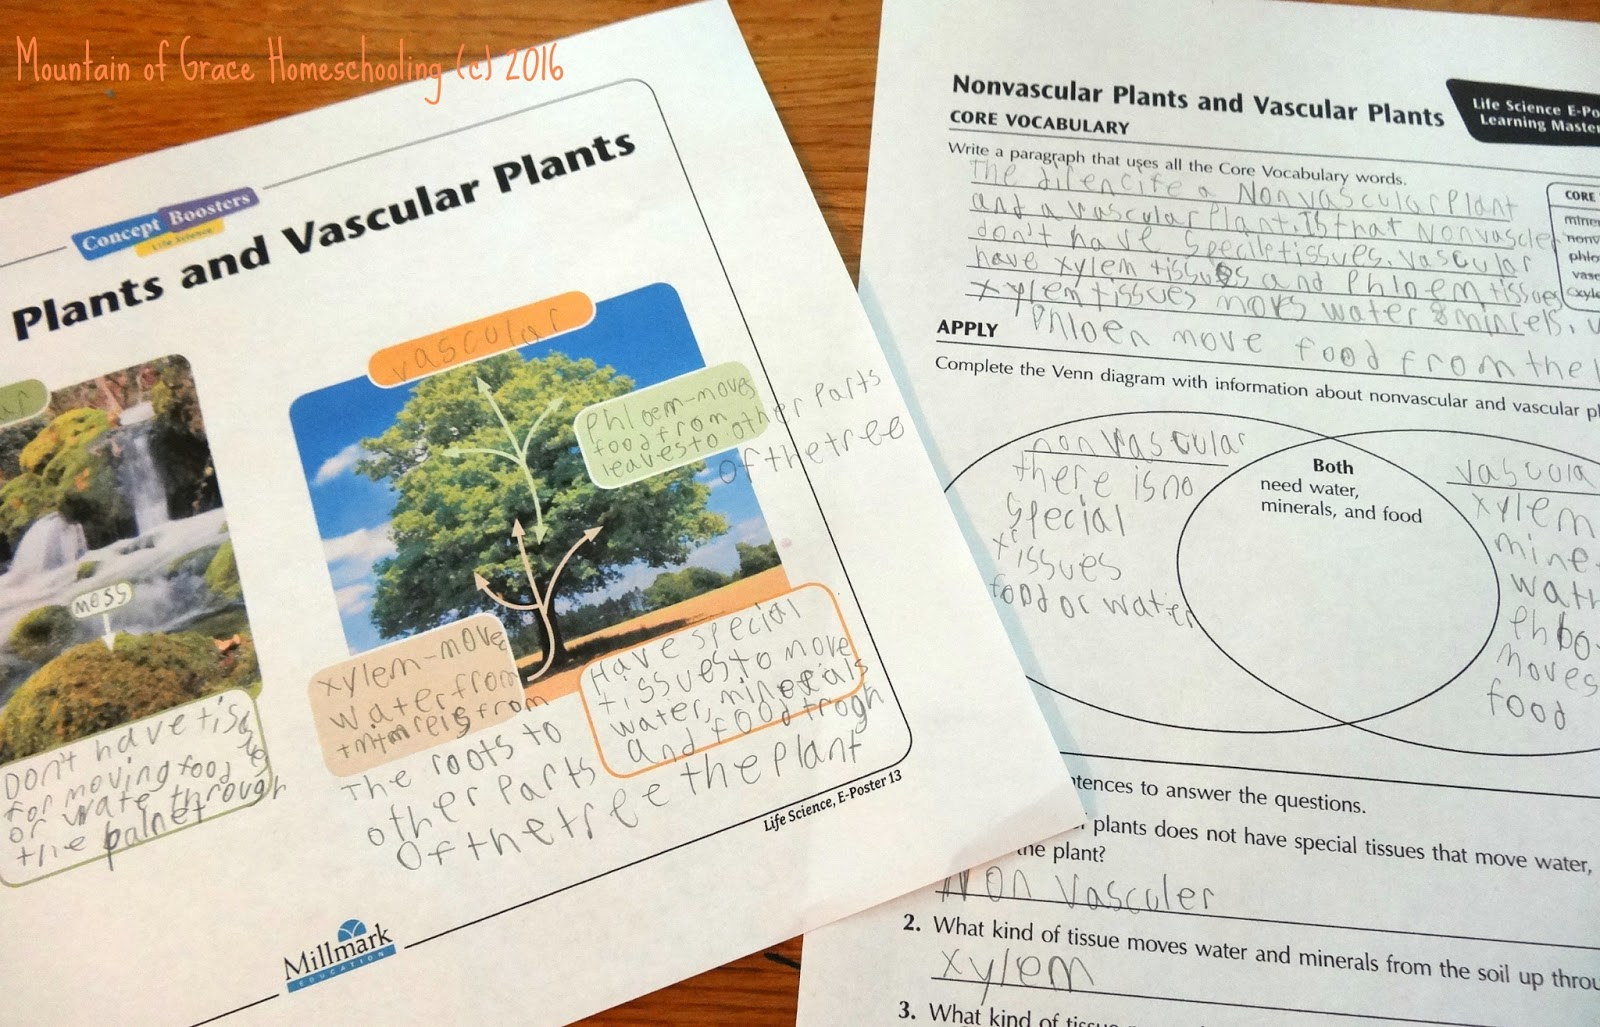 enchanted learning has a wonderful selection of plant lessons and worksheets we used a few of them too the kids did a fun experiment with celery and food